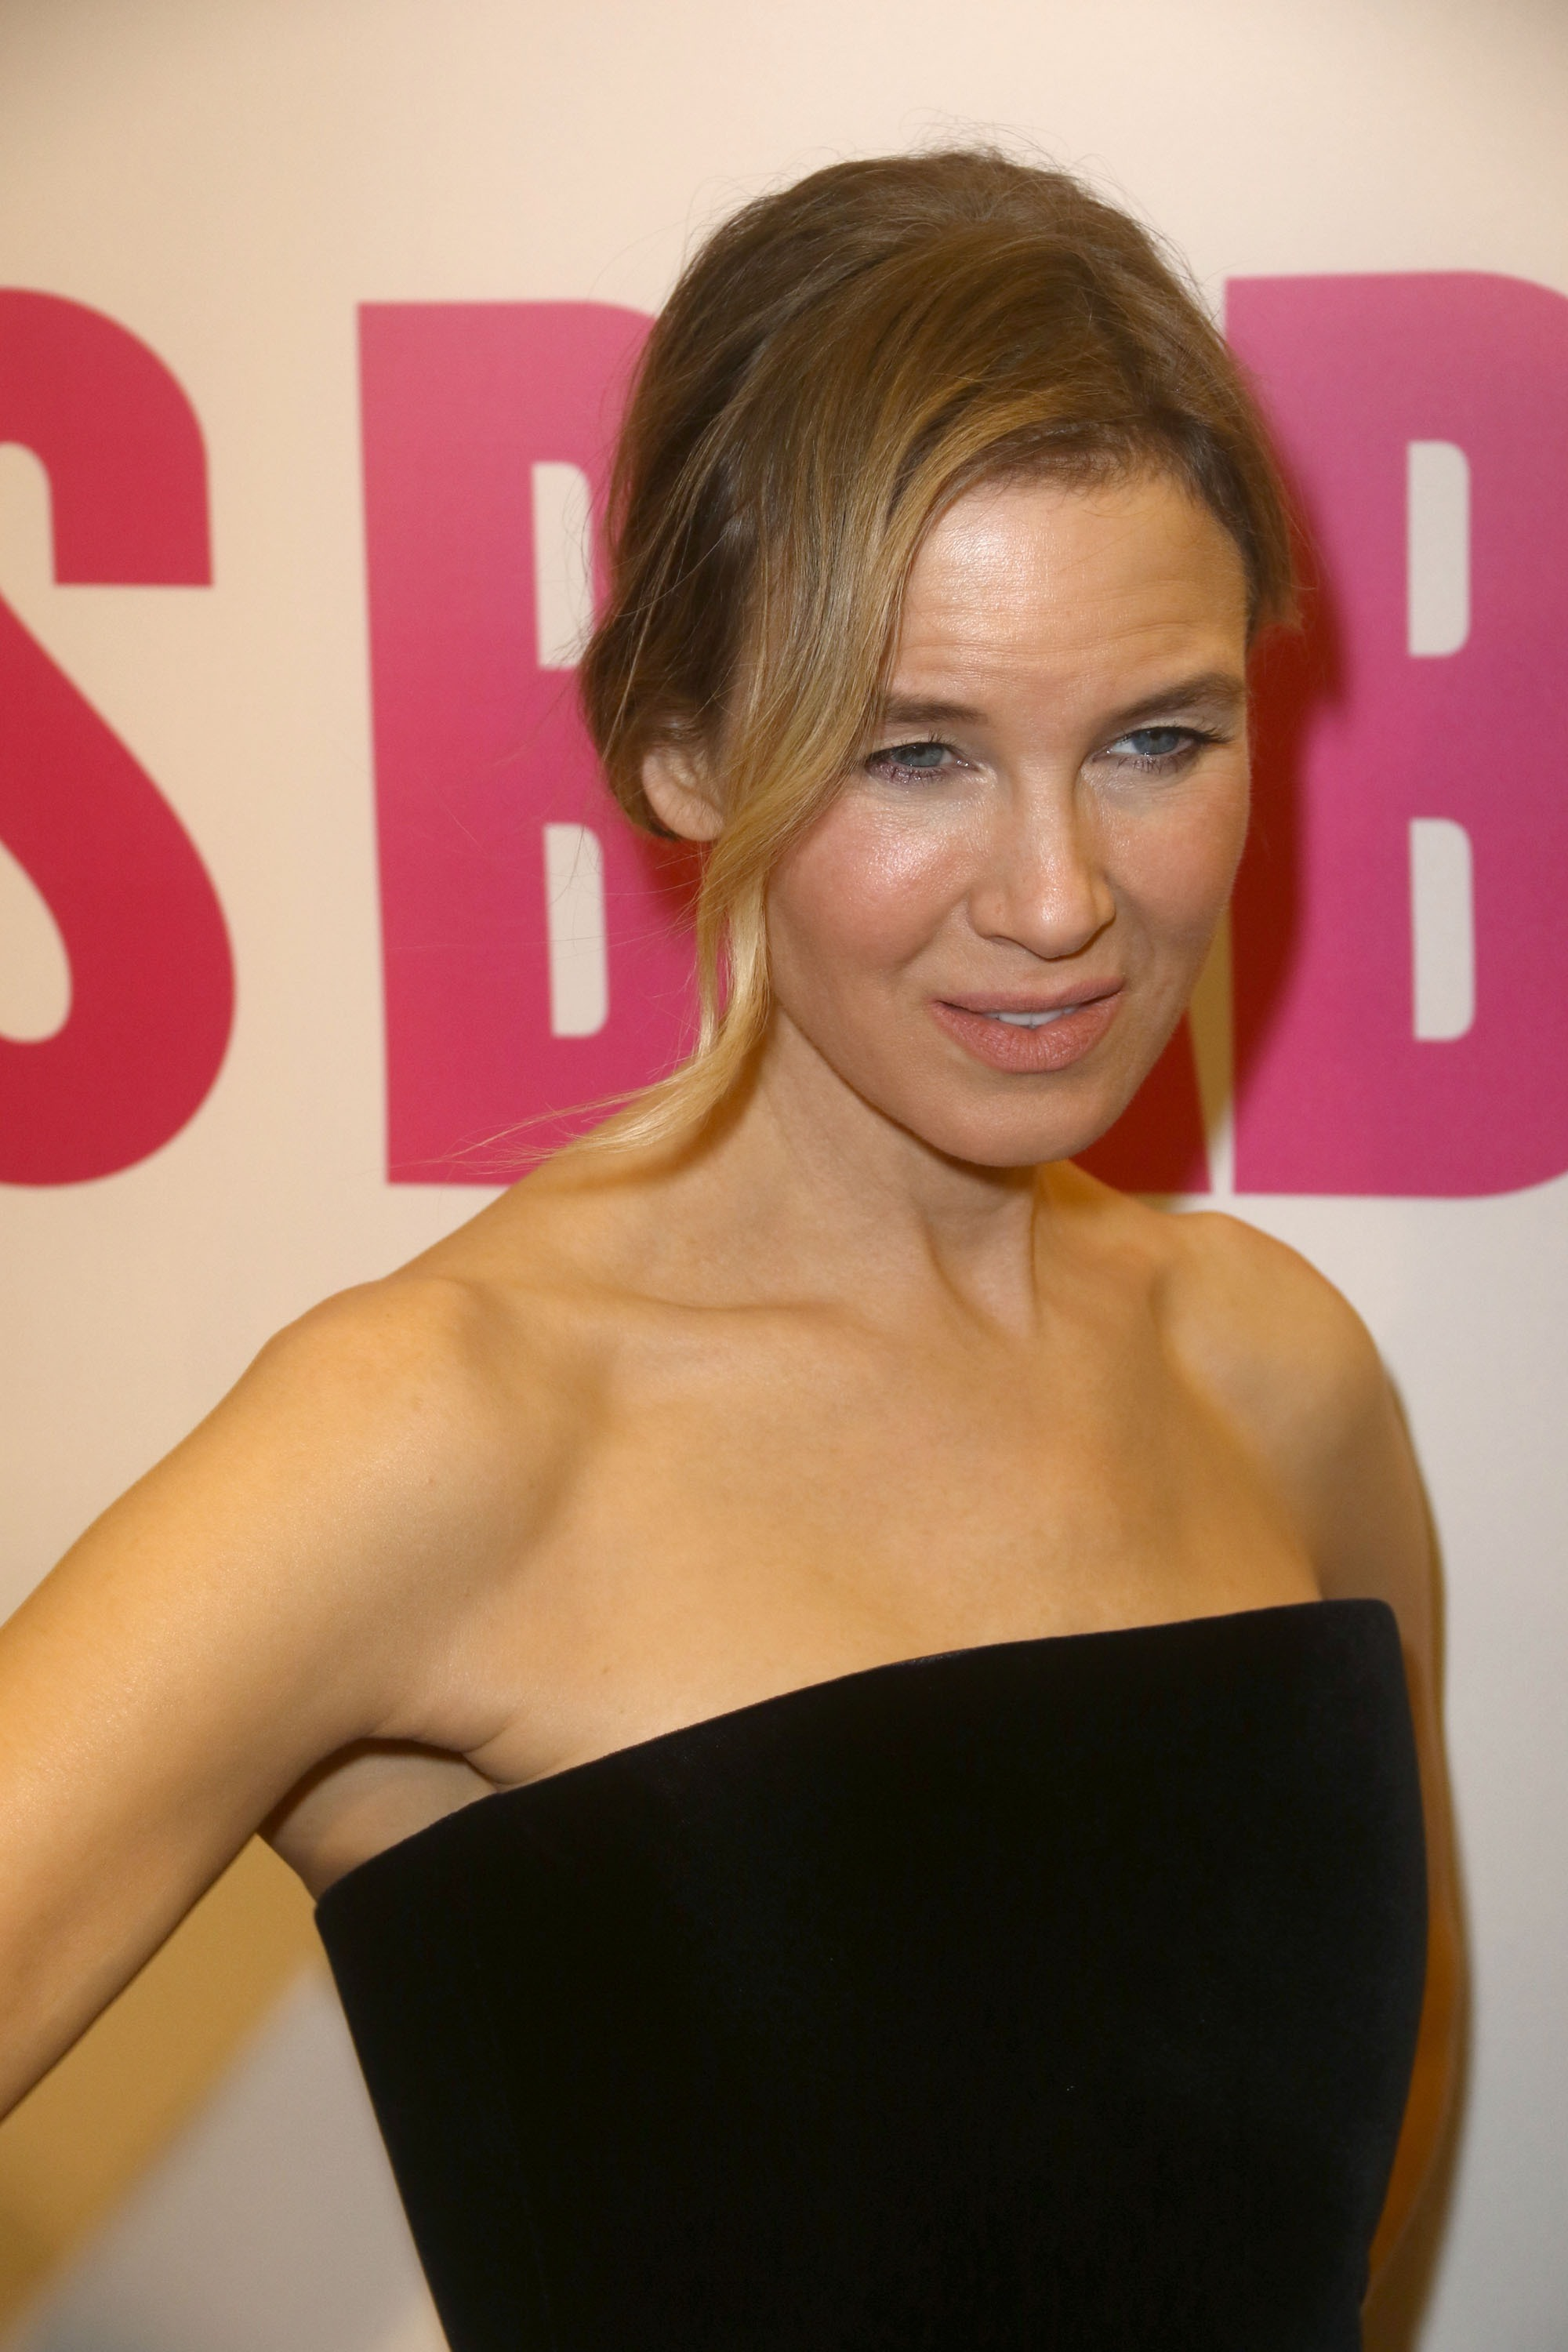 Picture Shows: Renee Zellweger September 12, 2016 Celebrities at the 'Bridget Jones's Baby' premiere at the Paris Theater in New York, New York. Non Exclusive UK RIGHTS ONLY Pictures by : FameFlynet UK © 2016 Tel : +44 (0)20 3551 5049 Email : info@fameflynet.uk.com